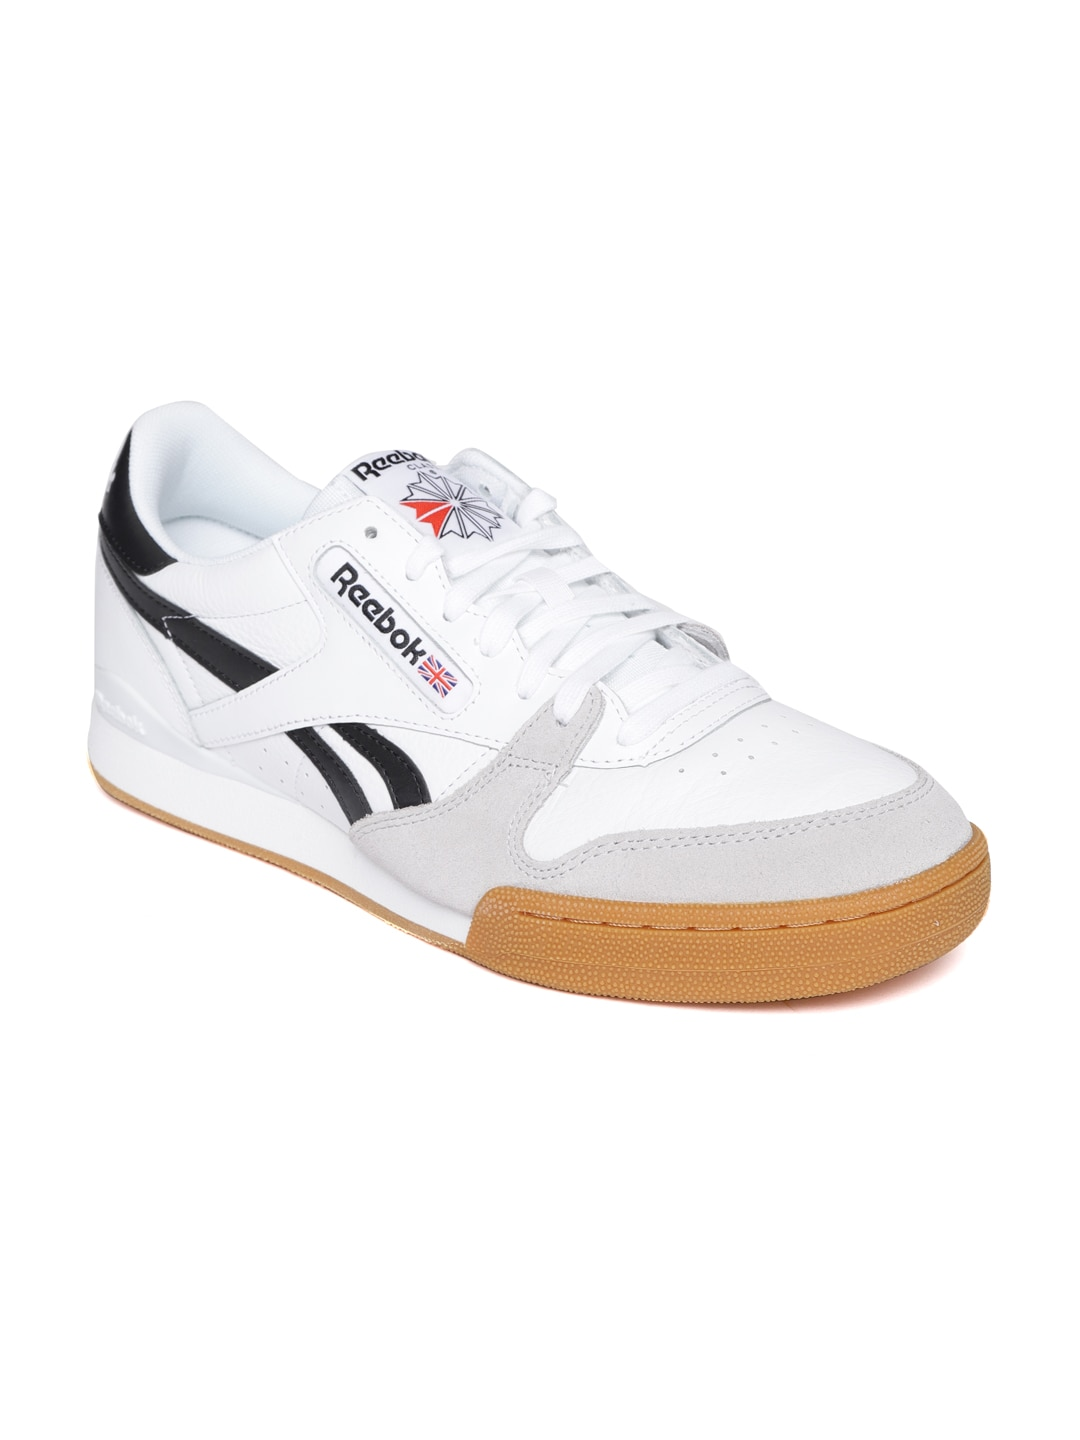 dbb713911f02f4 Reebok Sneakers Shoes - Buy Reebok Sneakers Shoes online in India